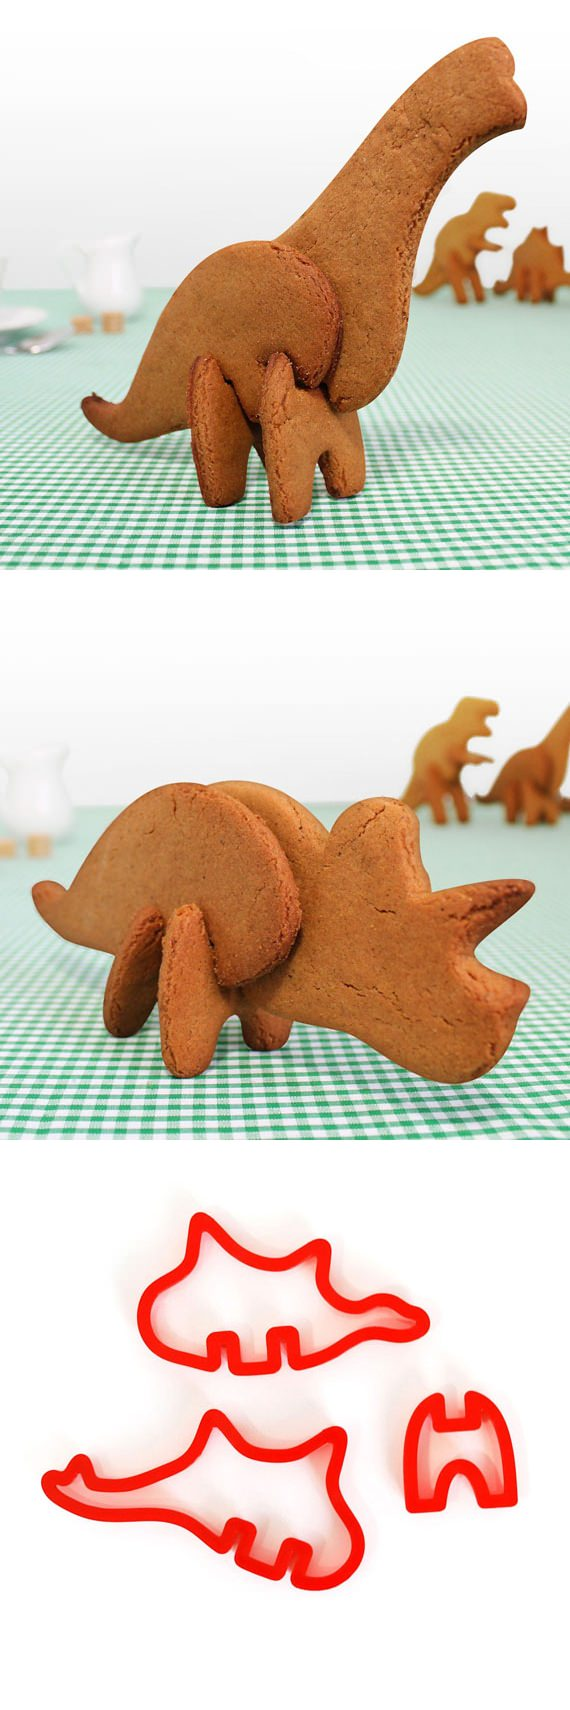 ↑ 3D Dinosaur Cookie Cutters